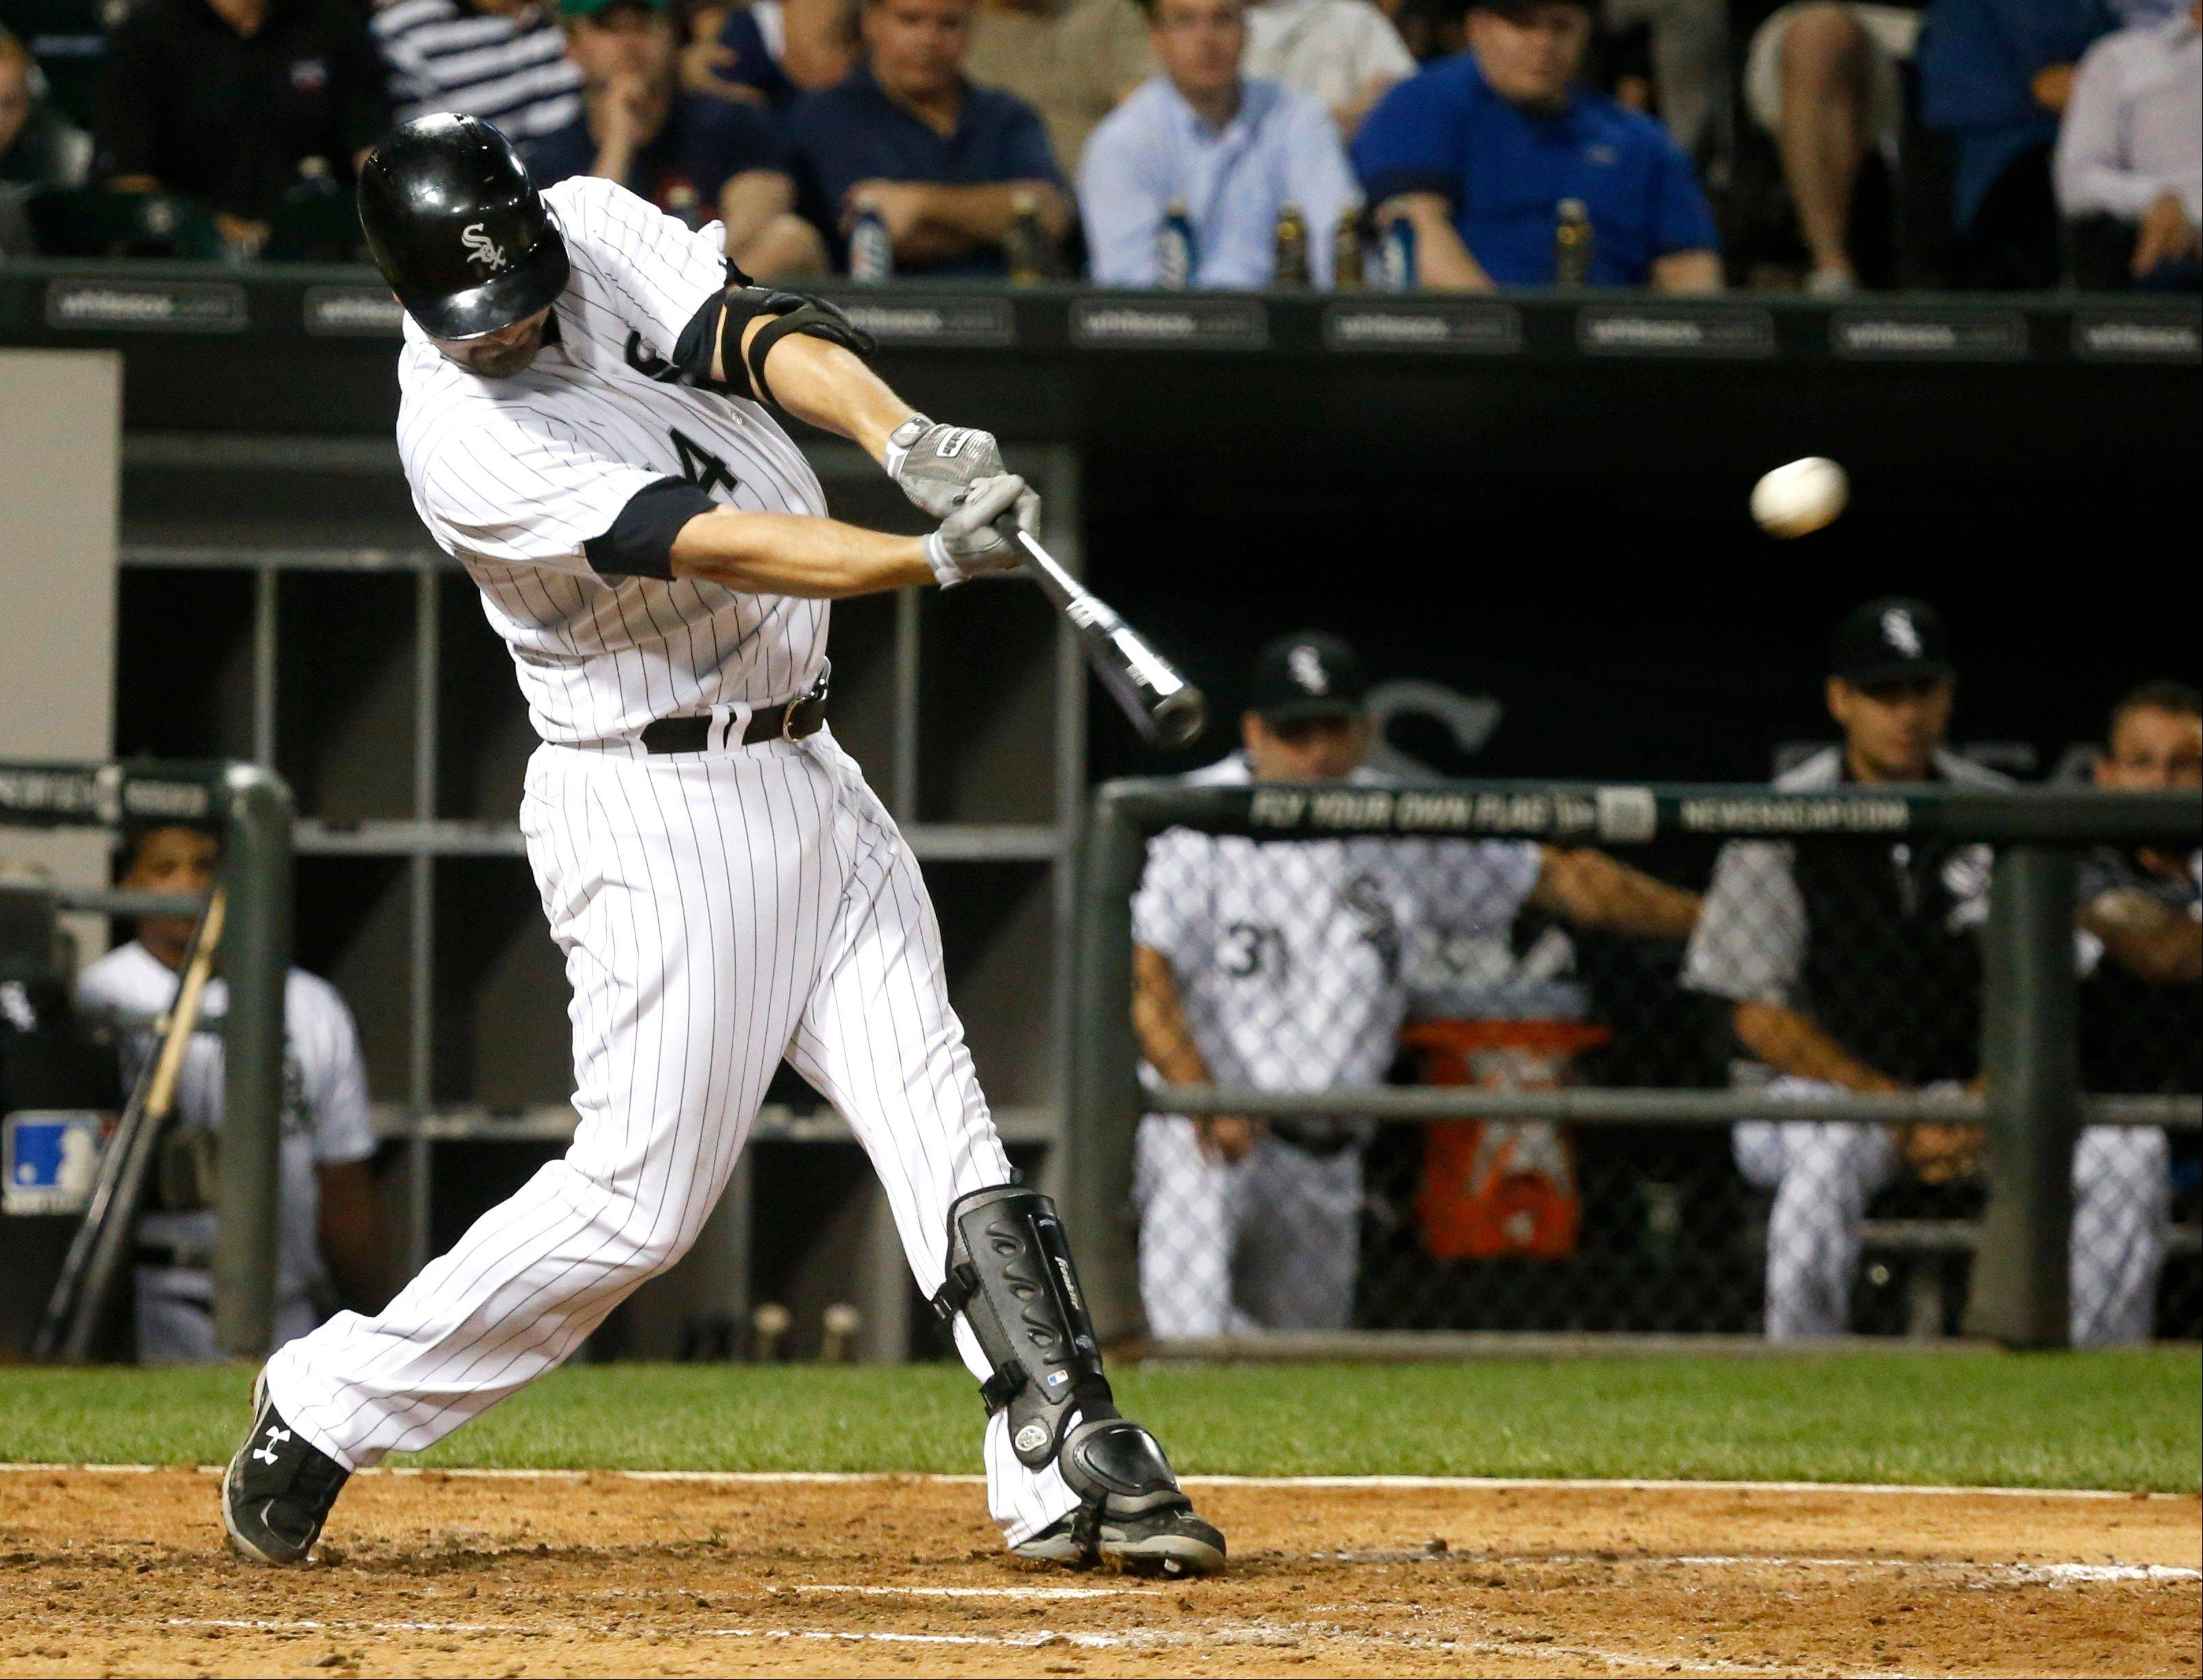 The White Sox' Paul Konerko hits an RBI-double off New York Yankees starting pitcher CC Sabathia during the seventh inning of a baseball game on Wednesday, Aug. 7, 2013, in Chicago.